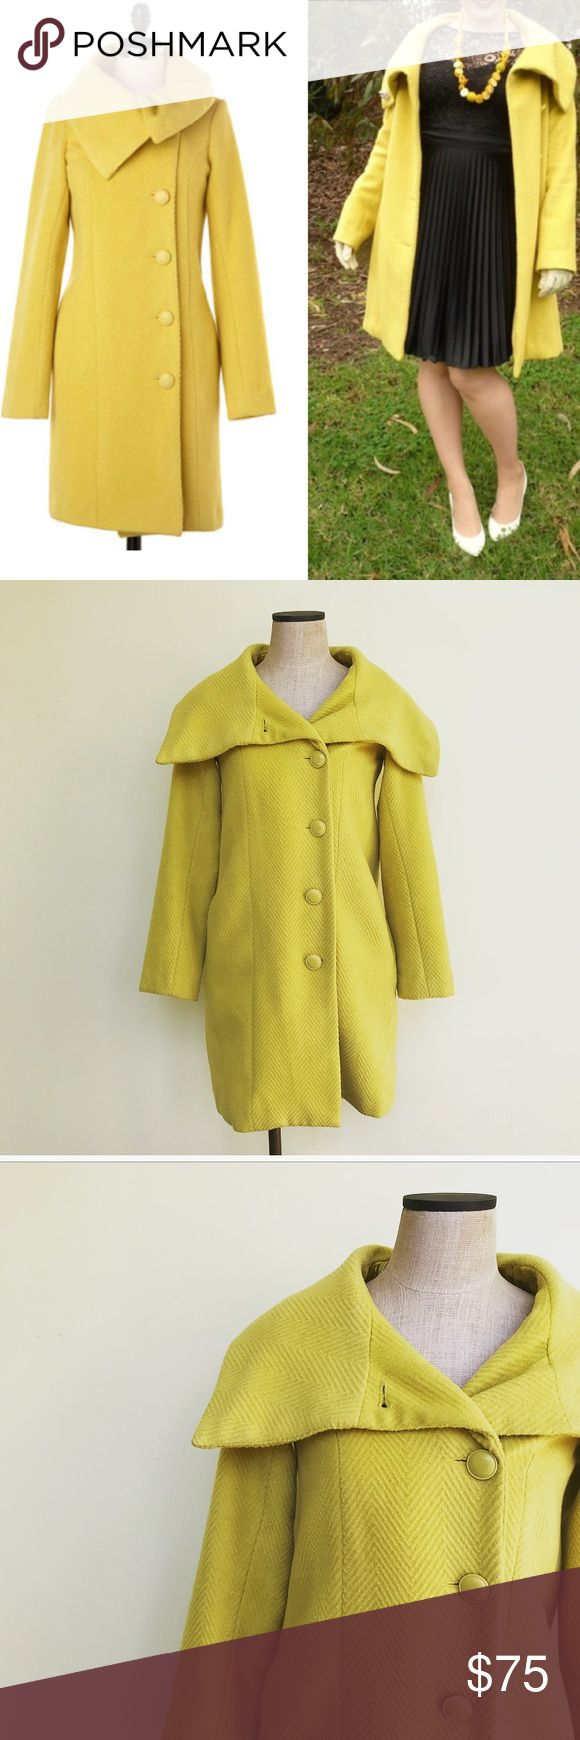 BB Dakota Wool Coat Gorgeous mod inspired yellow wool coat. Perfect pop of color for fall/winter. Size small. In excellent pre-worn condition. Wool blend. No flaws. No trades! BB Dakota Jackets & Coats